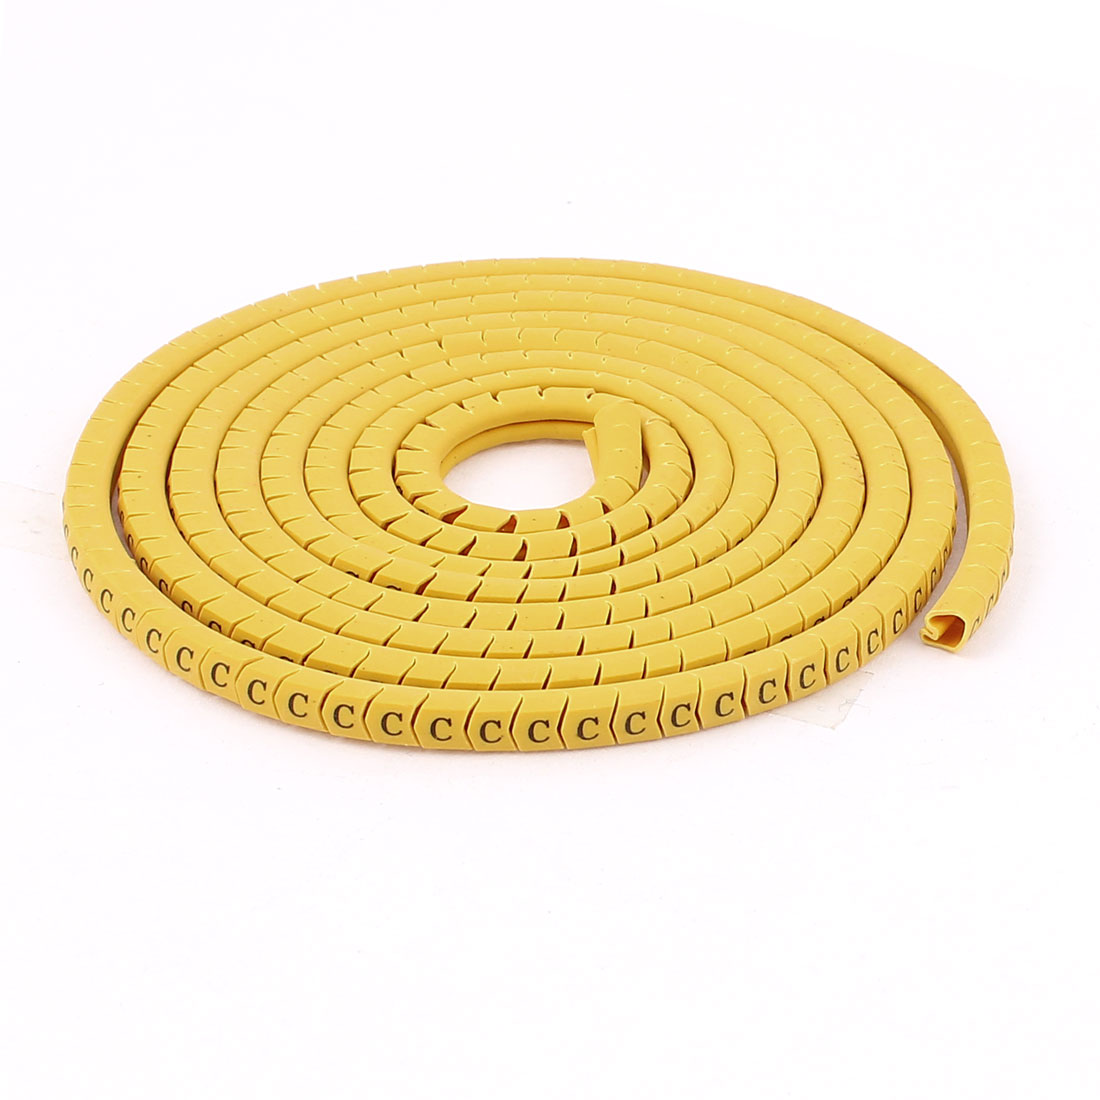 330 Pcs Yellow PVC Letter C Pattern Cable Markers Labels Tags Tubes Sleeves for 2.5mm2 Wire